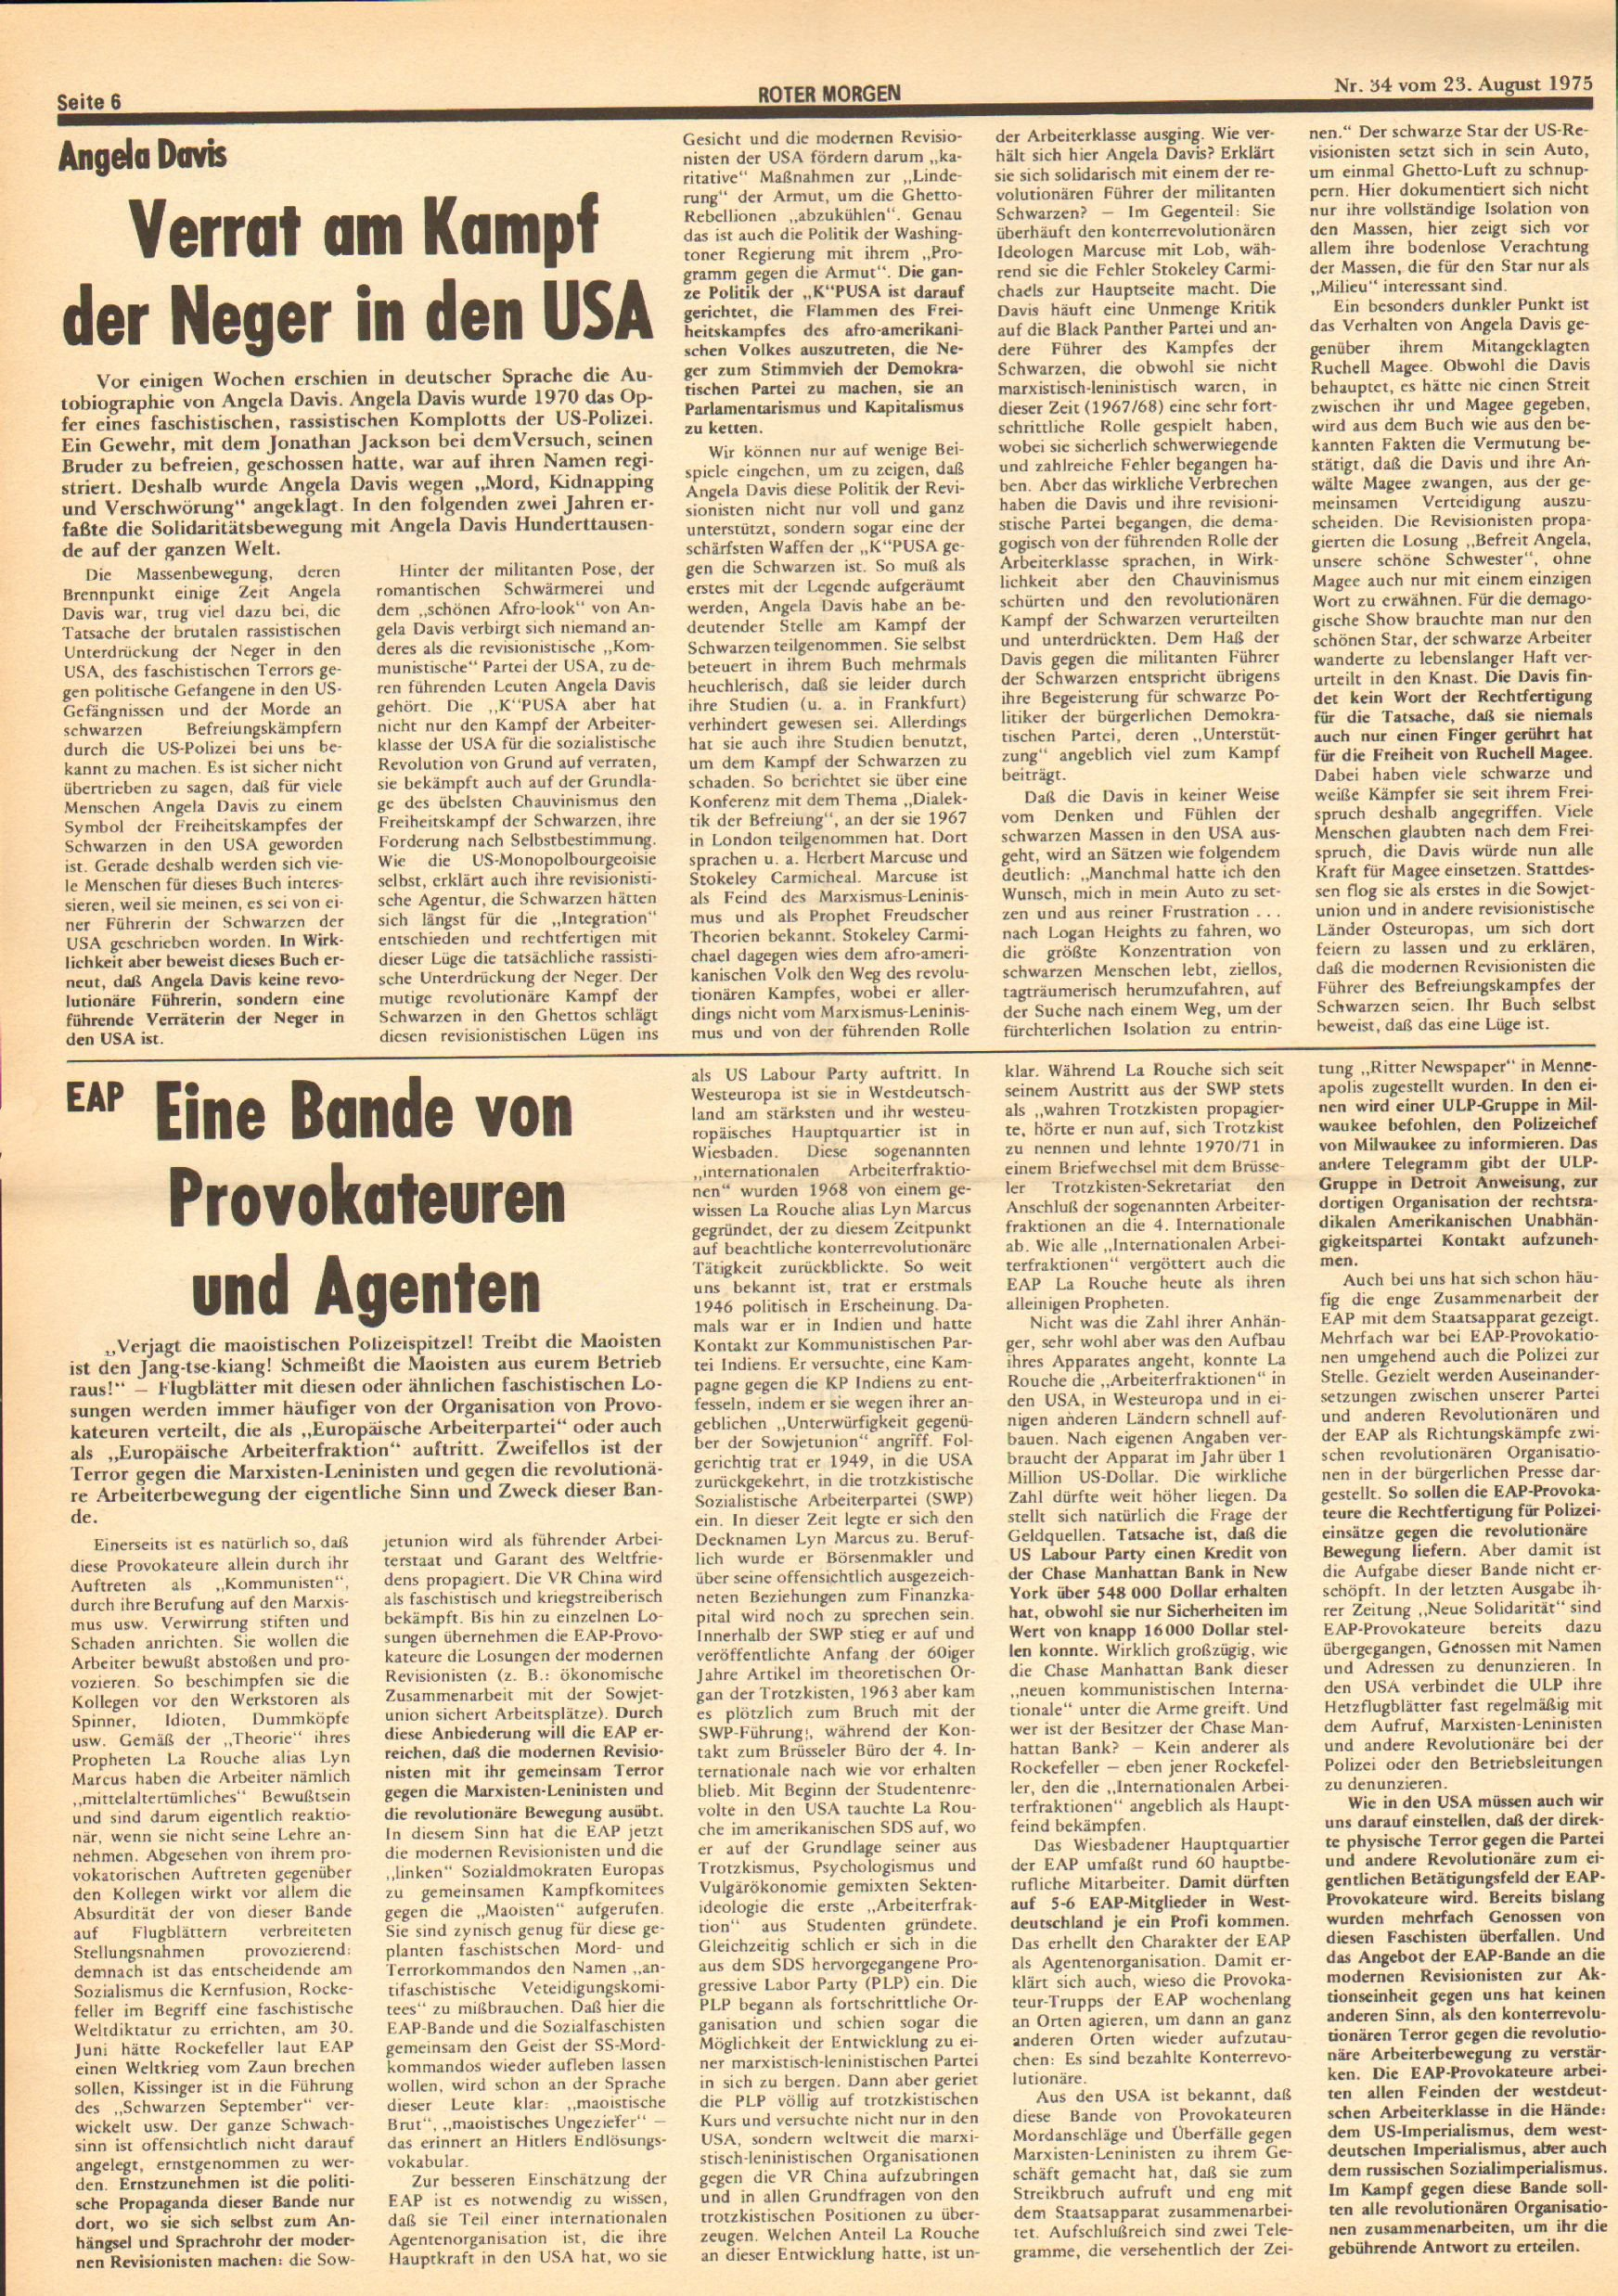 Roter Morgen, 9. Jg., 23. August 1975, Nr. 34, Seite 6